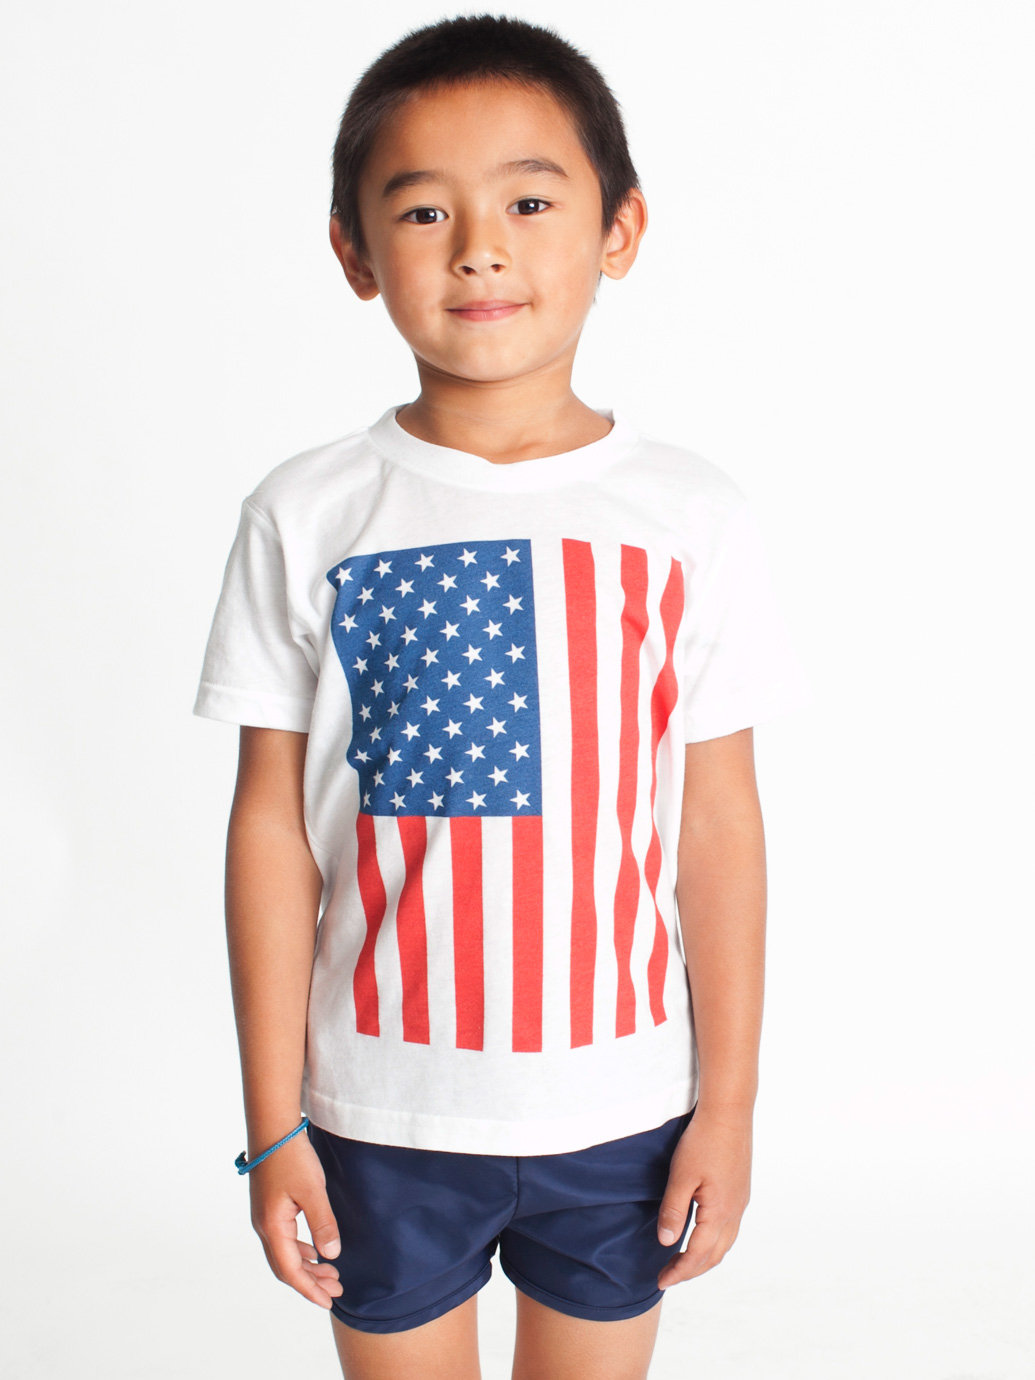 Wear This: American Apparel Tee